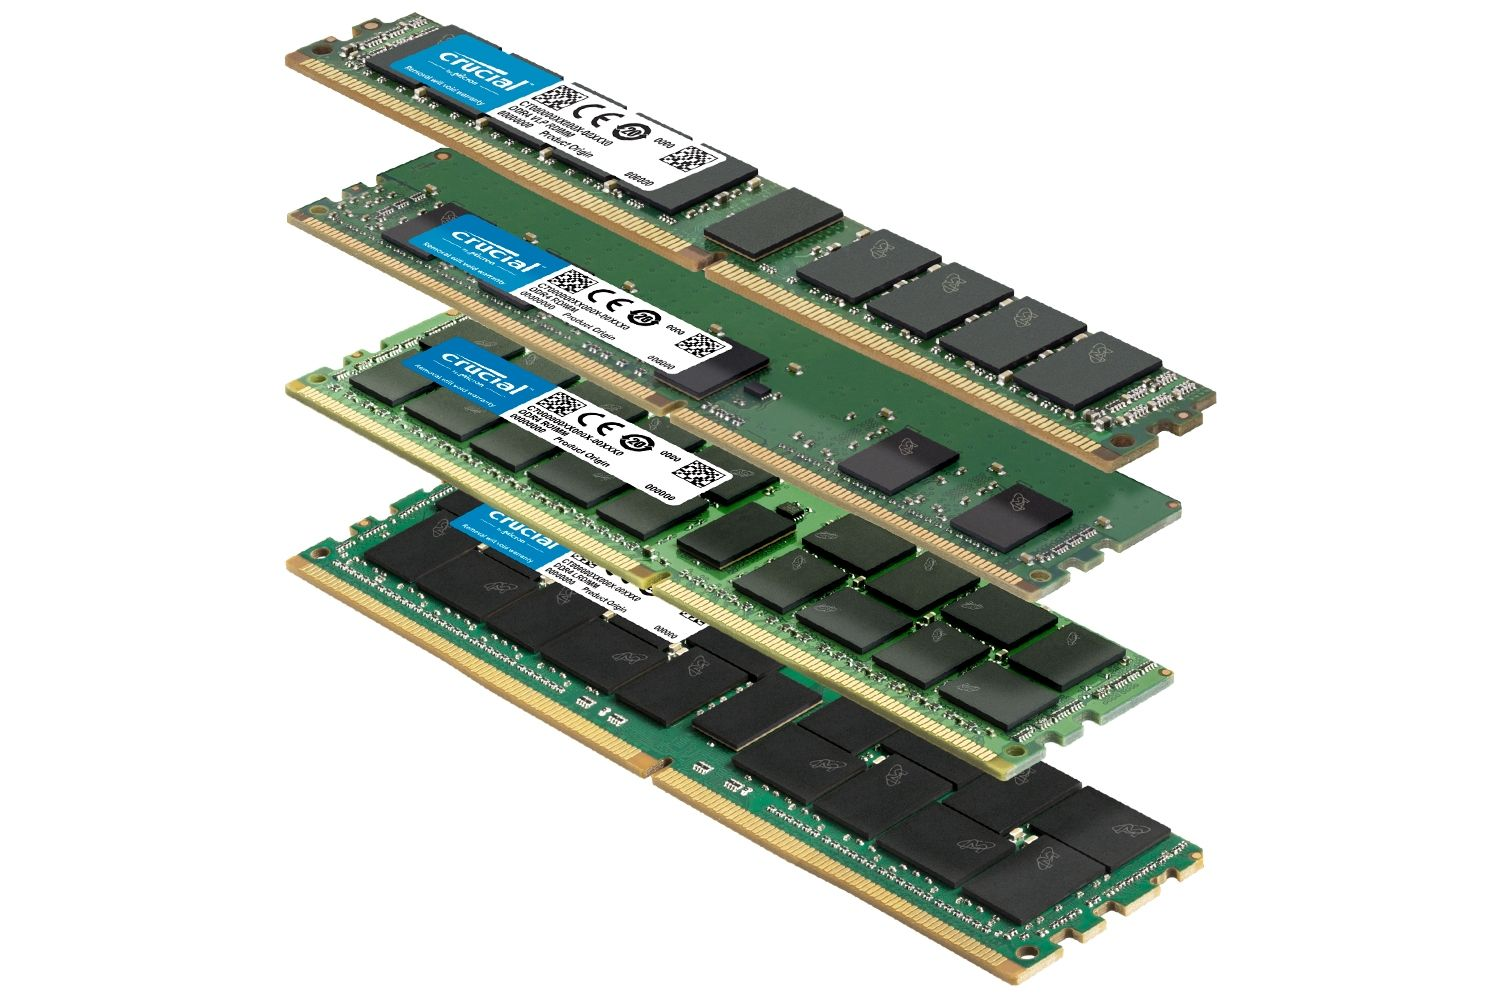 A stack of various Crucial RAM memory modules with different form factors